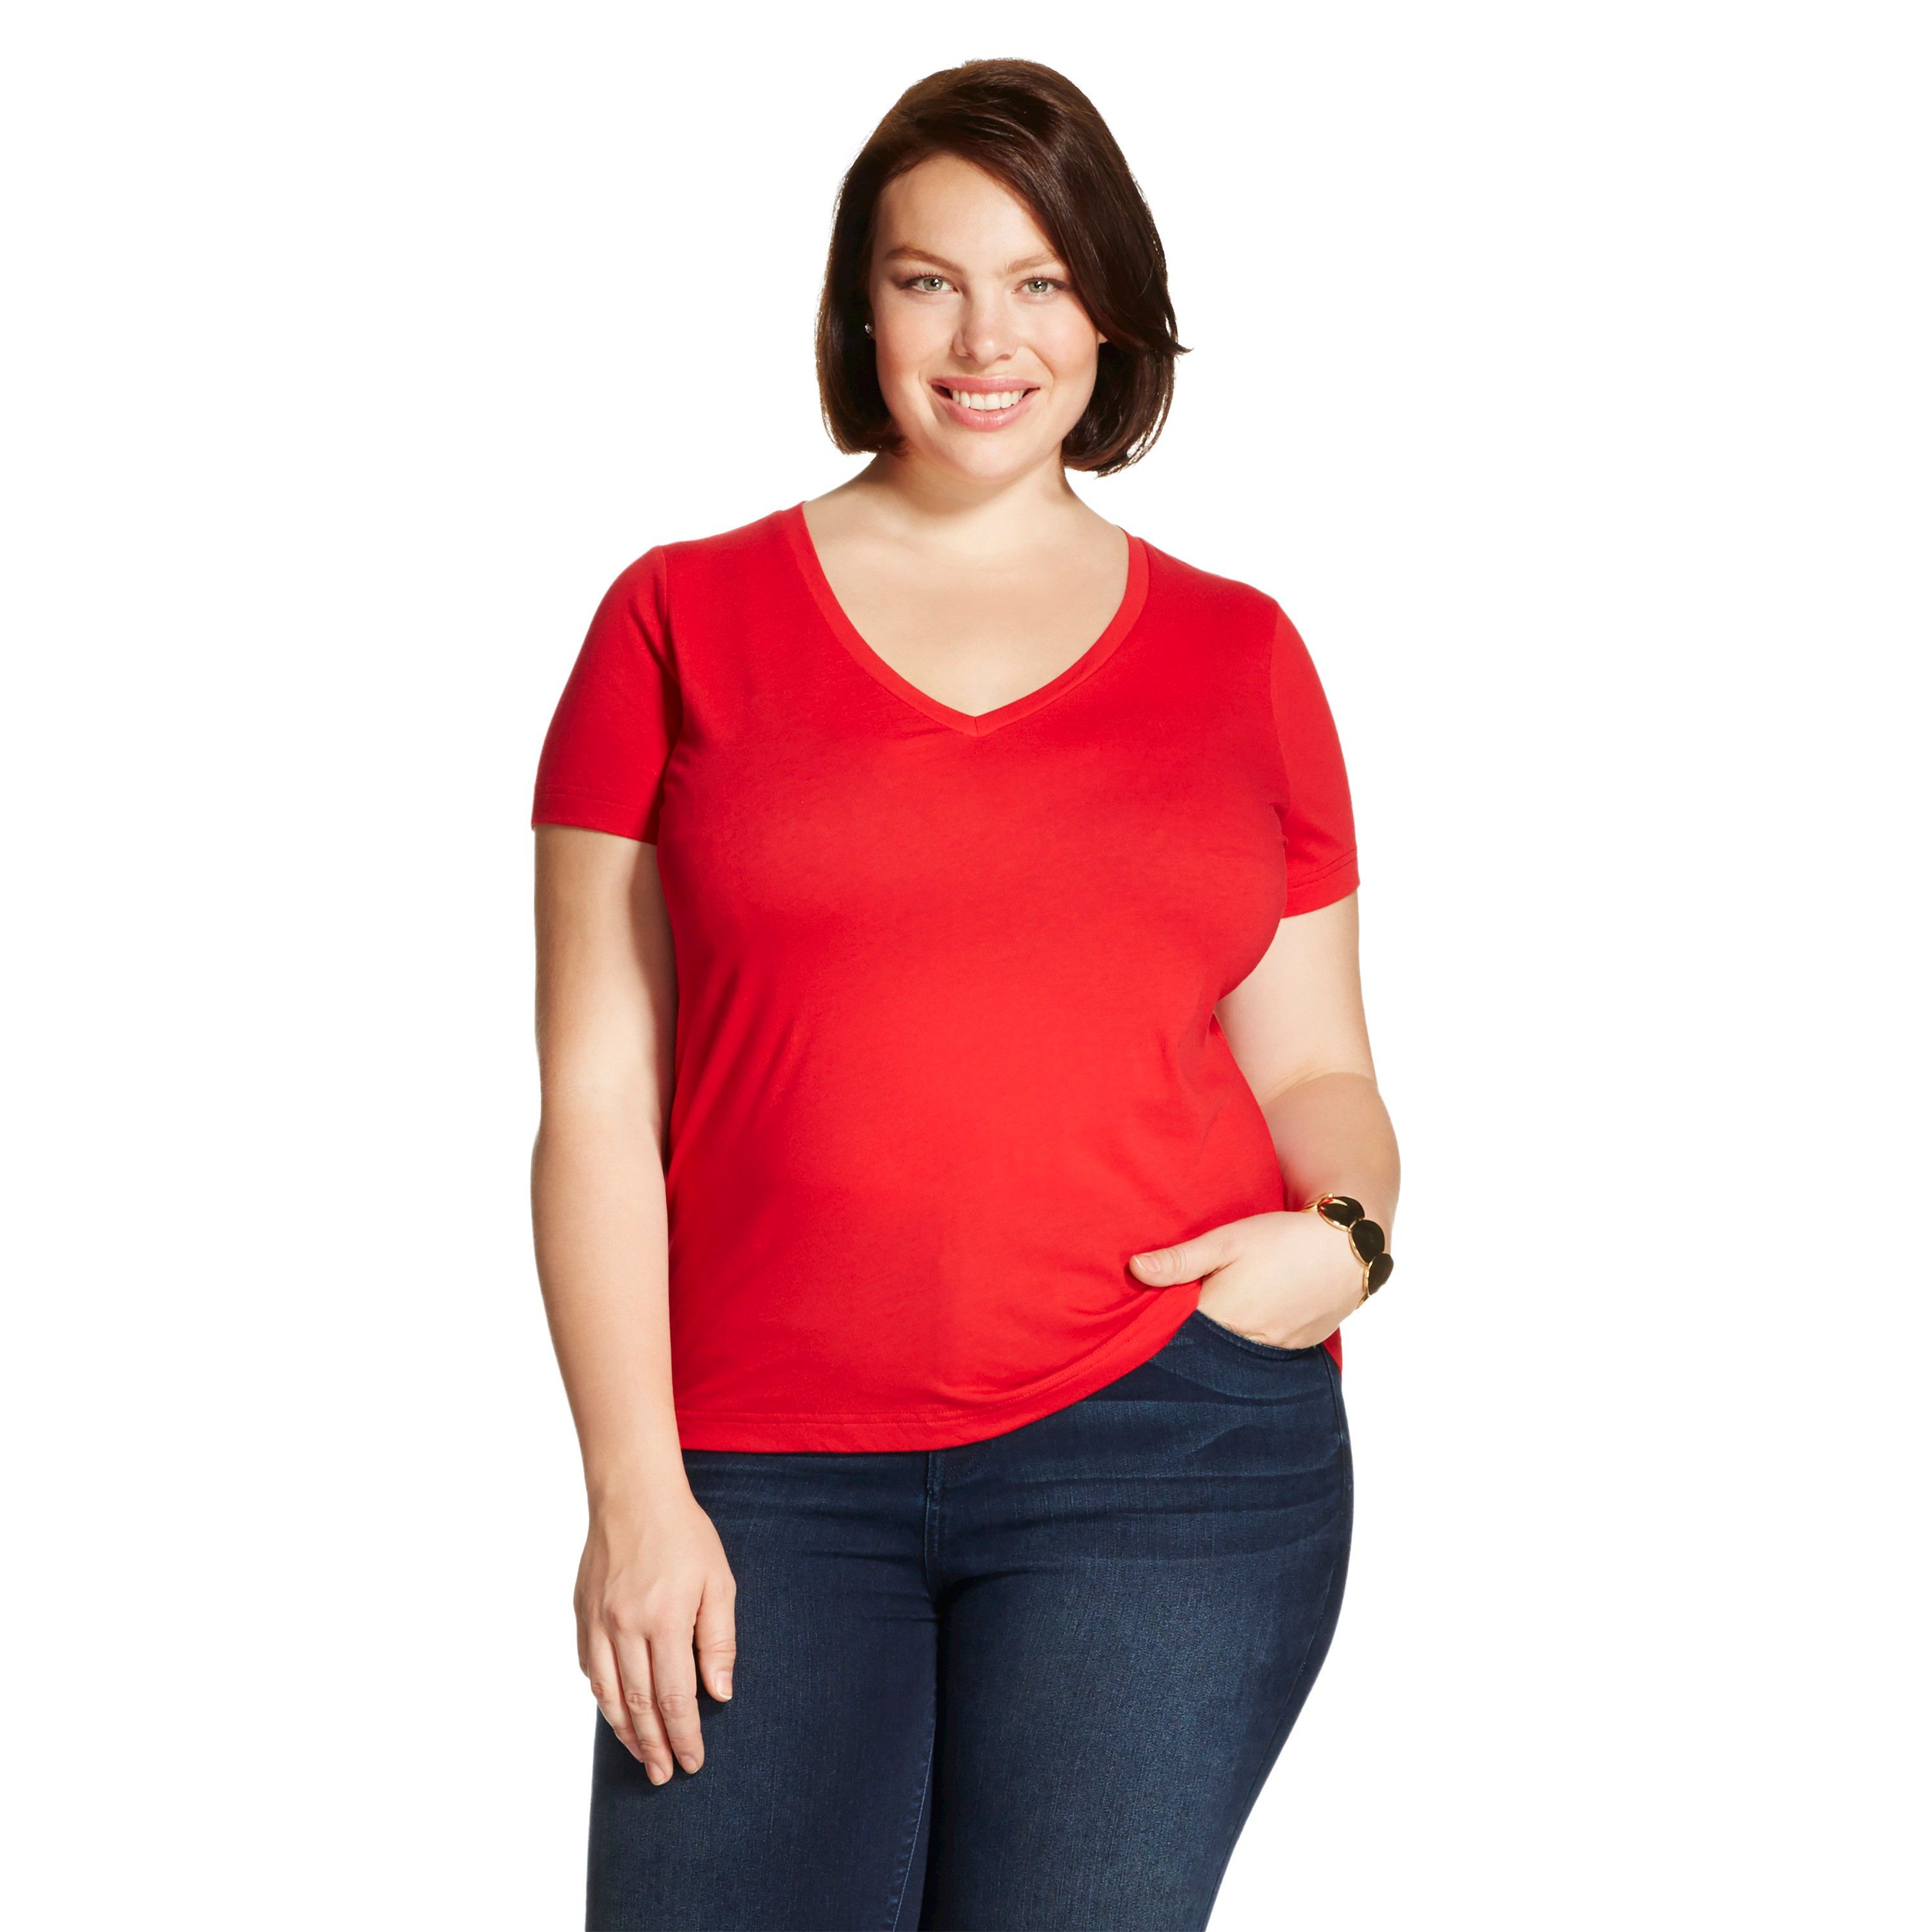 A great selection of Women's Plus Size Tees and Knit Tops at shopnow-vjpmehag.cf L.L. Bean Women's clothing is expertly designedand made for the shared joy of the outdoors.